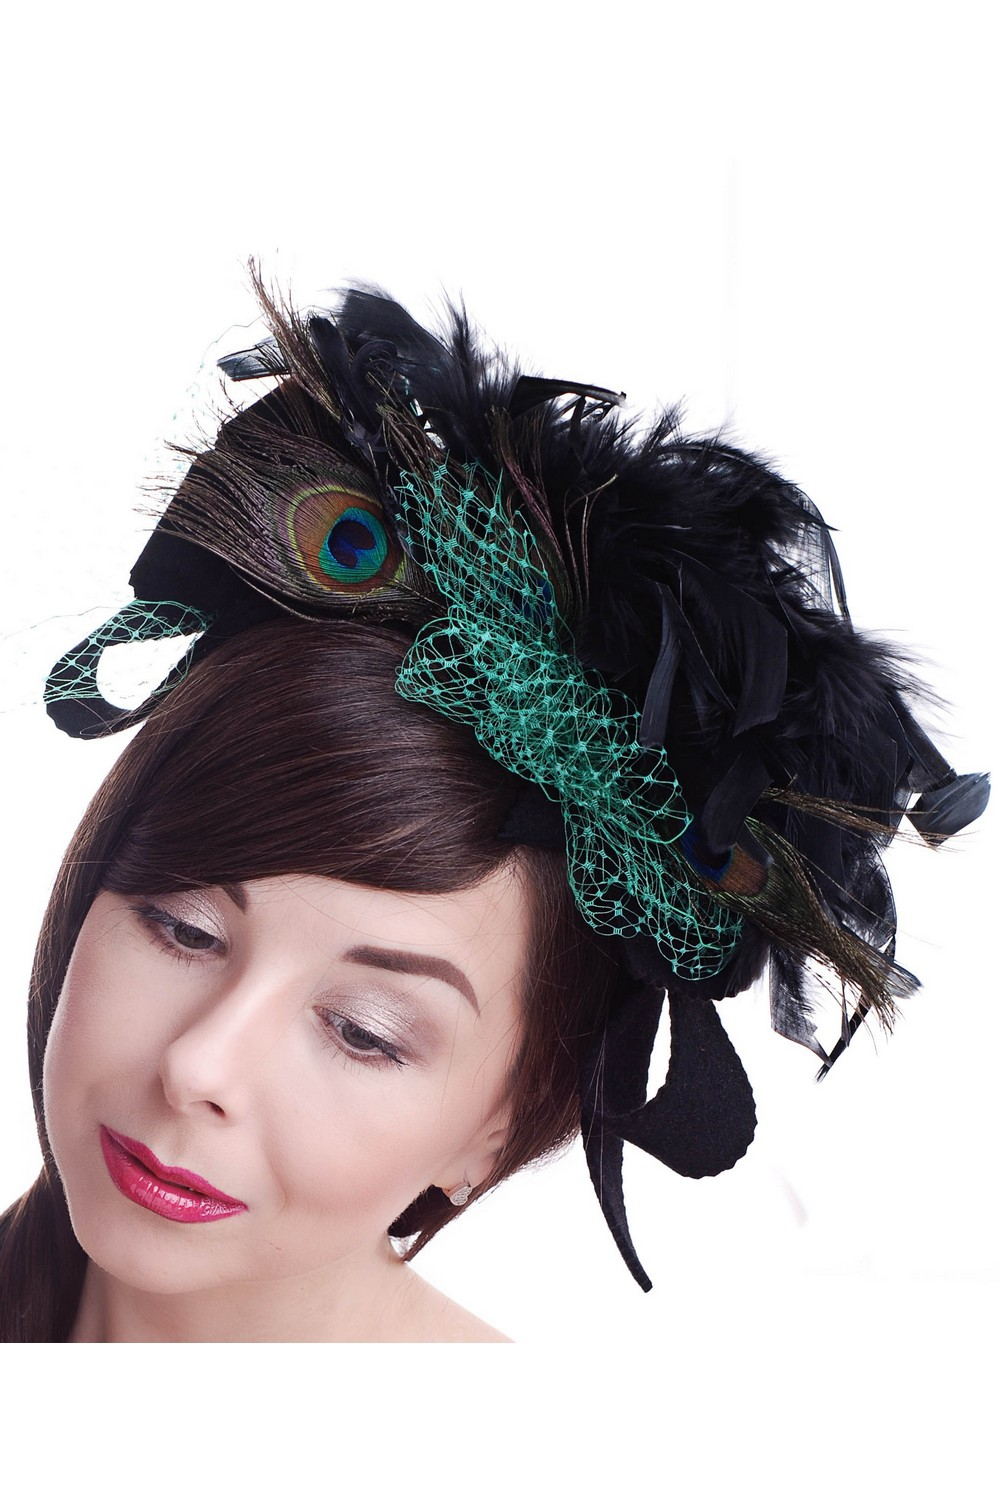 Buy Little black felt women's peacock feathers hat in retro style, Unique exclusive designer stylish hat